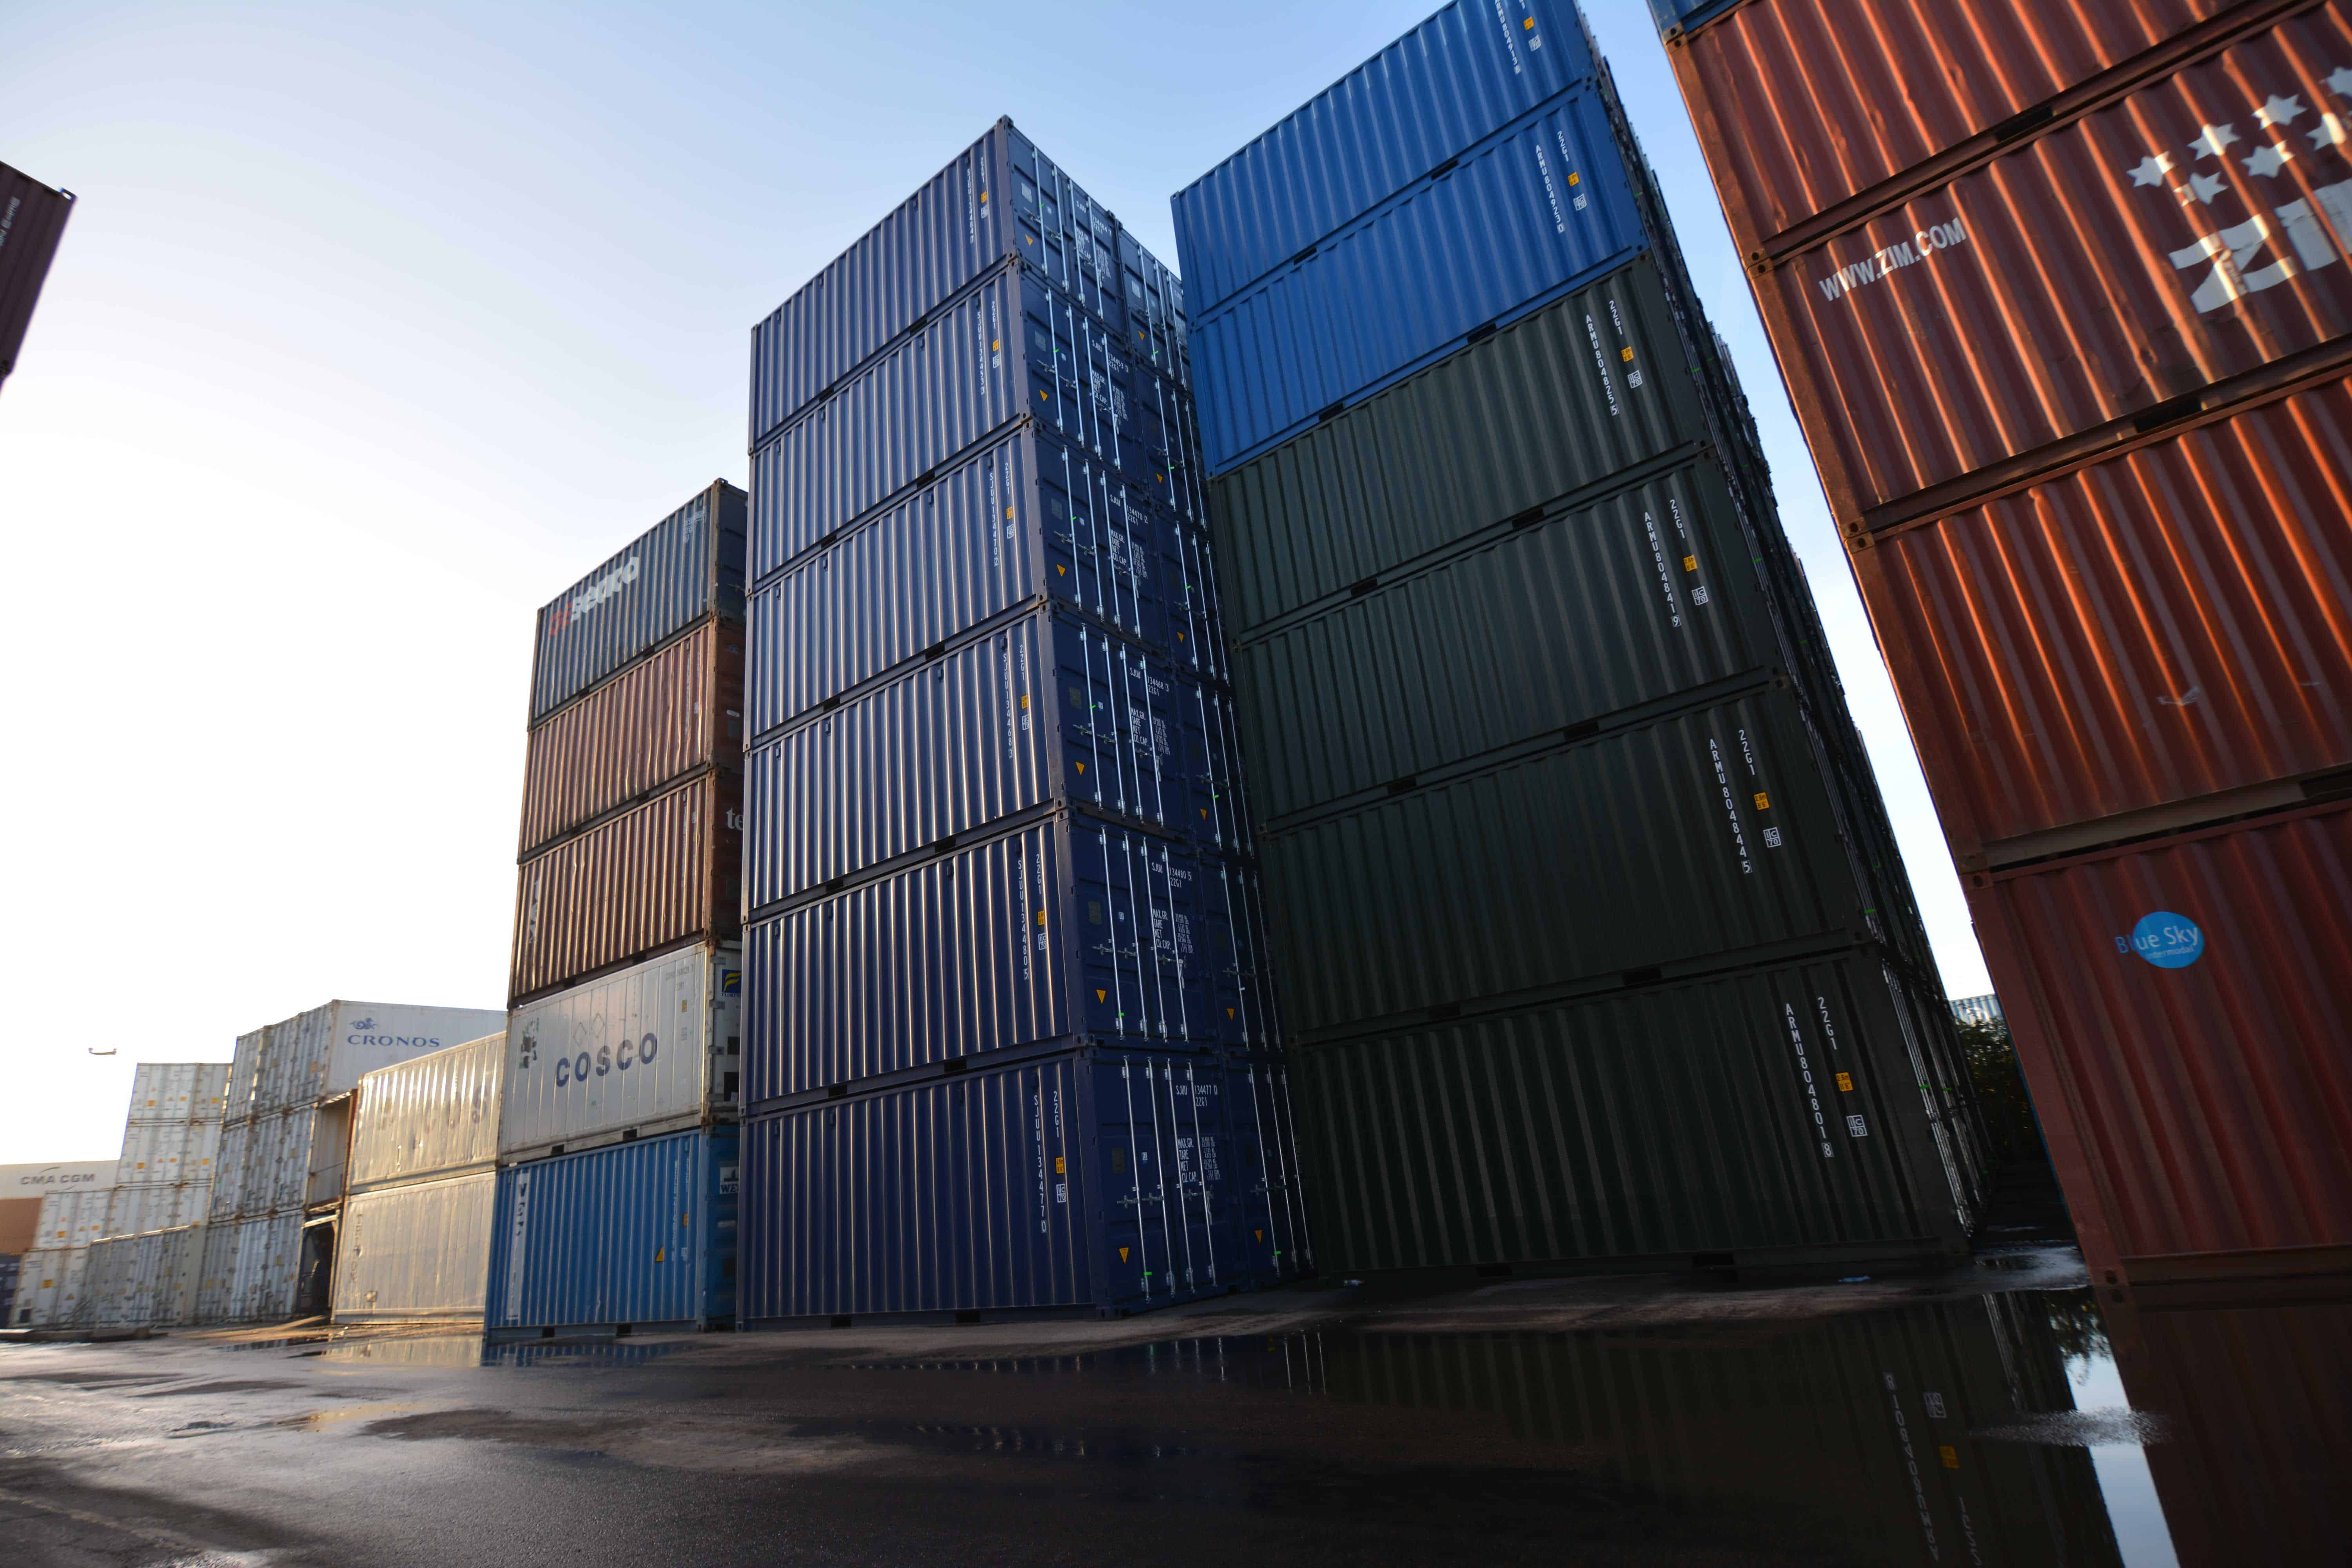 How to Buy a Shipping Container - 7 Secrets You Should Know